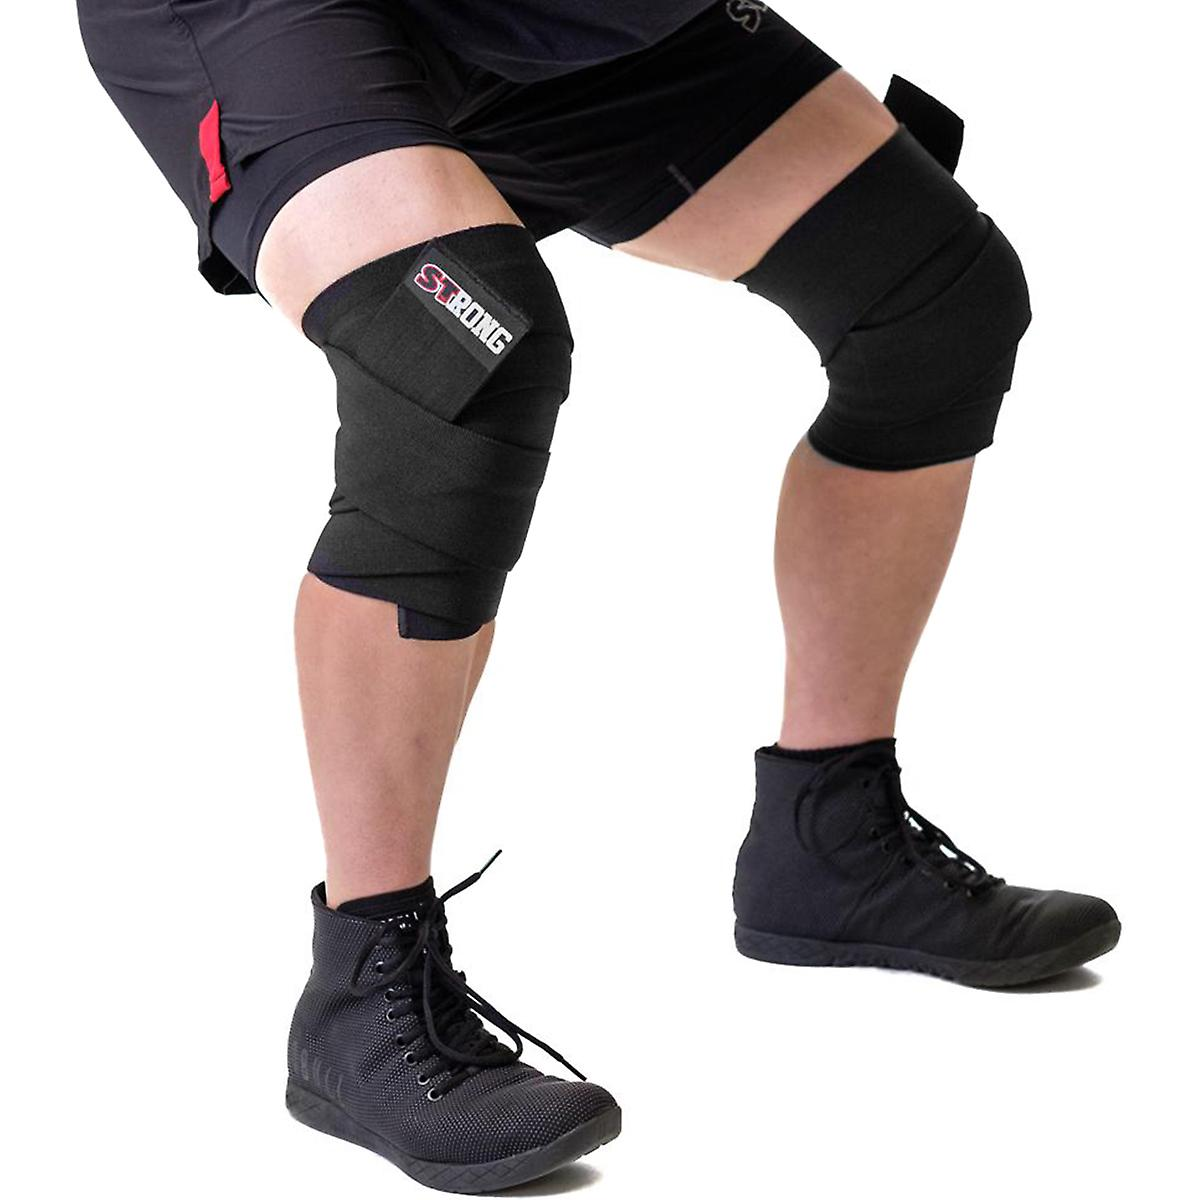 c29df9c0d1 Sling Shot STrong Knee Wraps by Mark Bell - IPF elastic weight lifting  supports